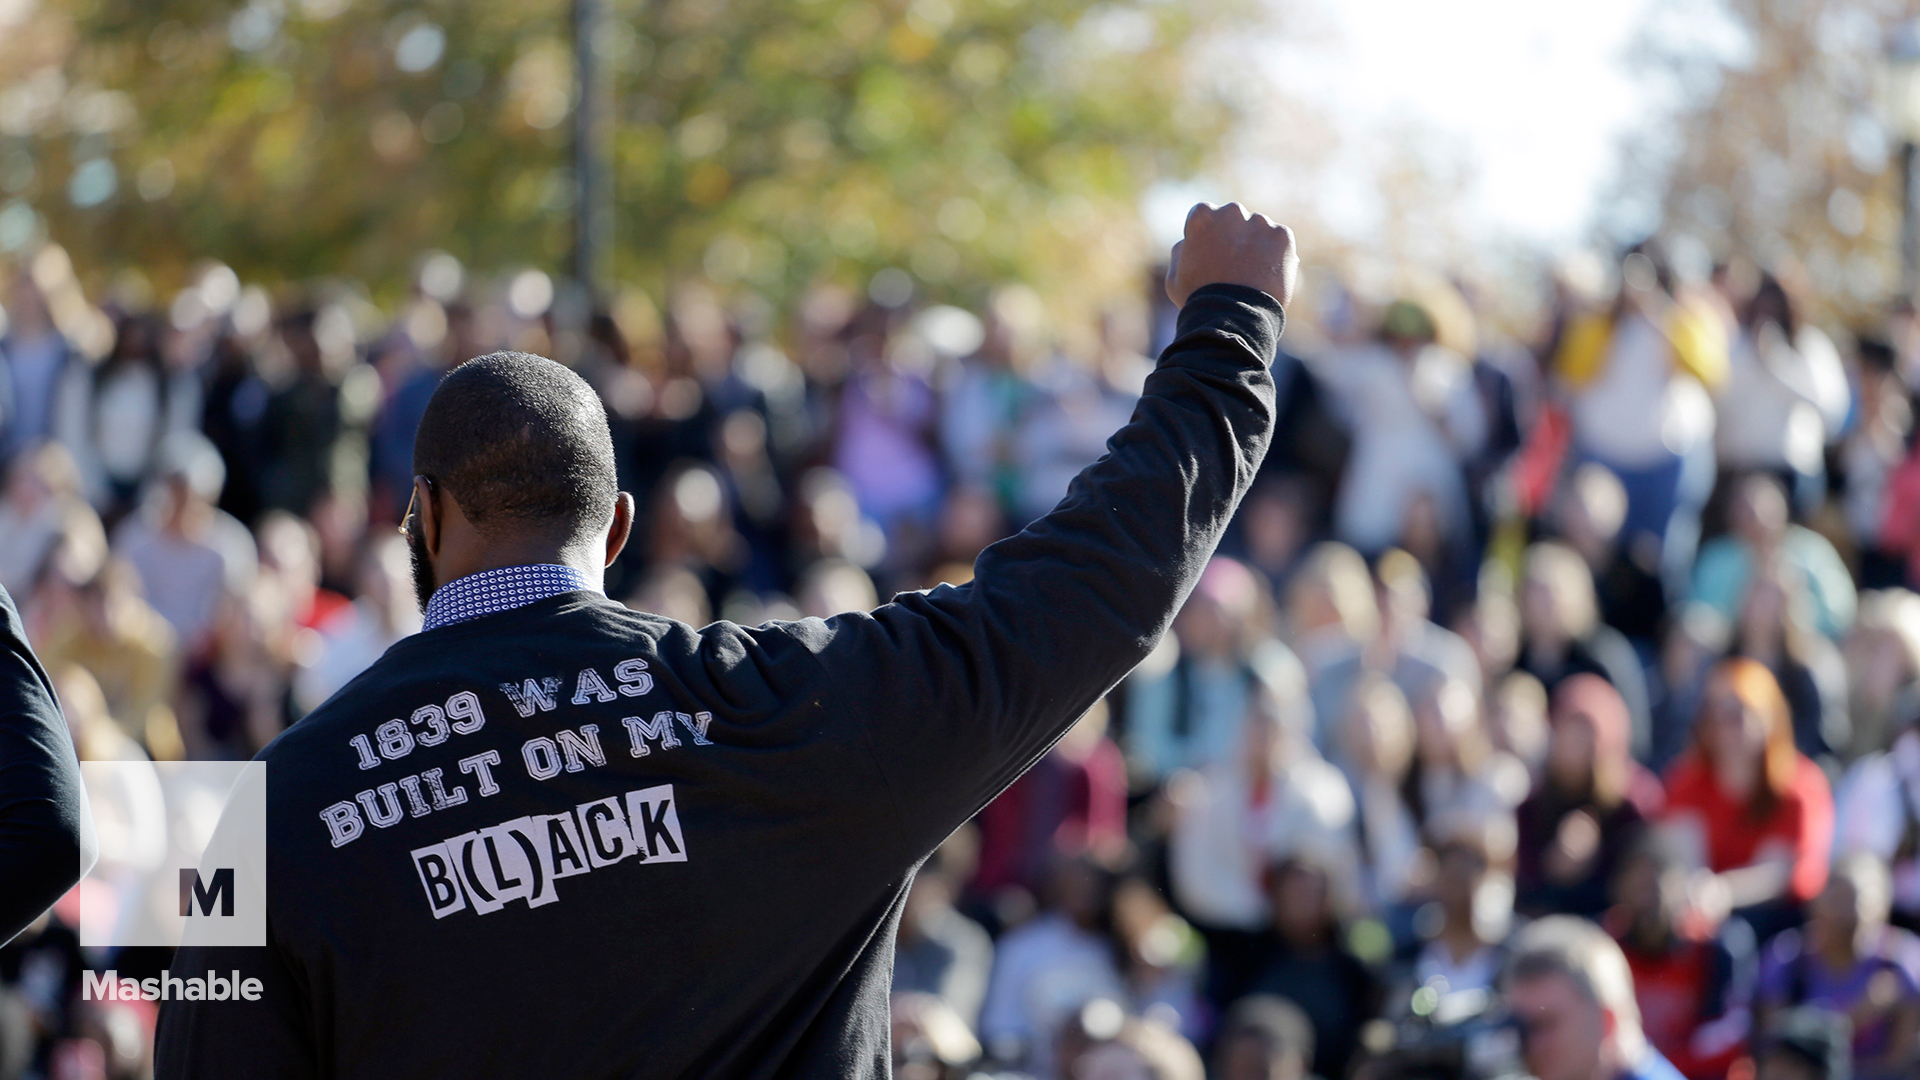 Black Lives Matter: How 3 Words Became a Movement